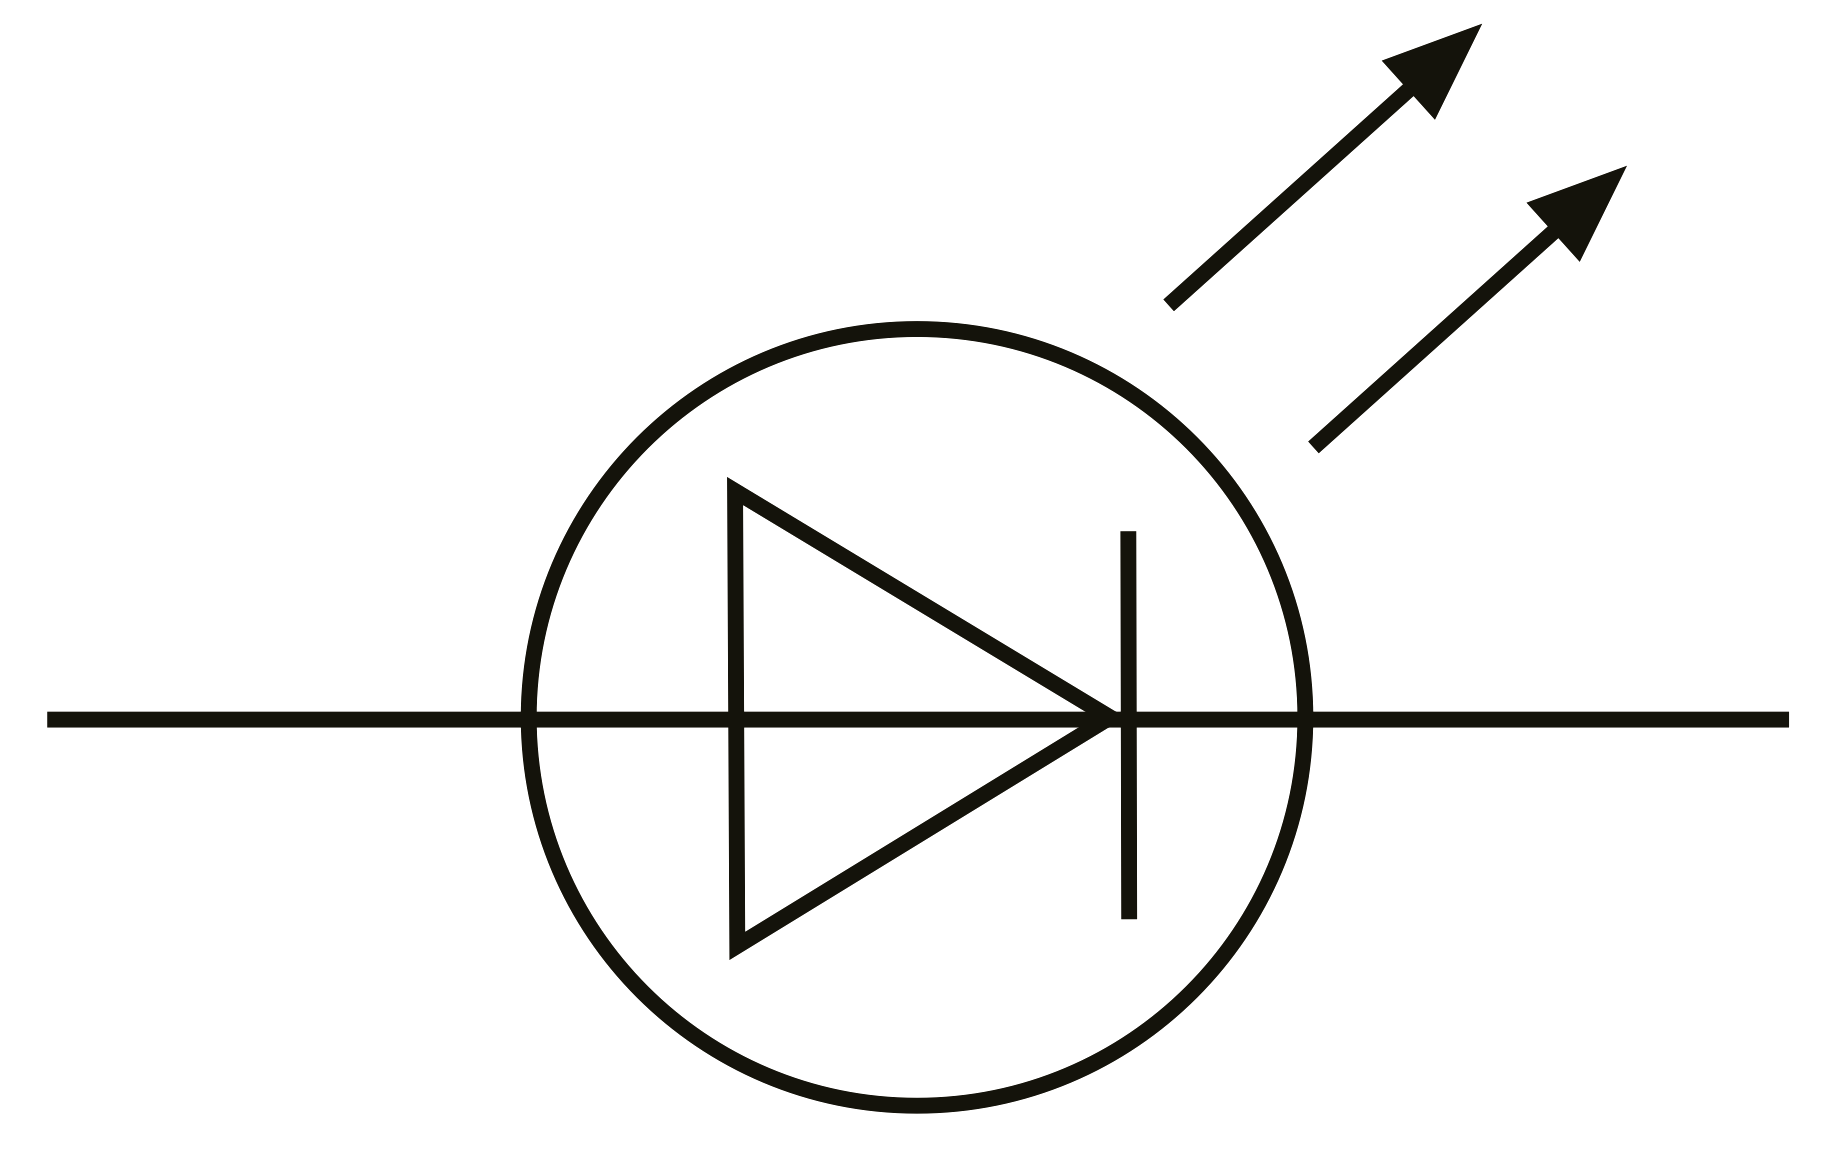 Led Electrical Symbol